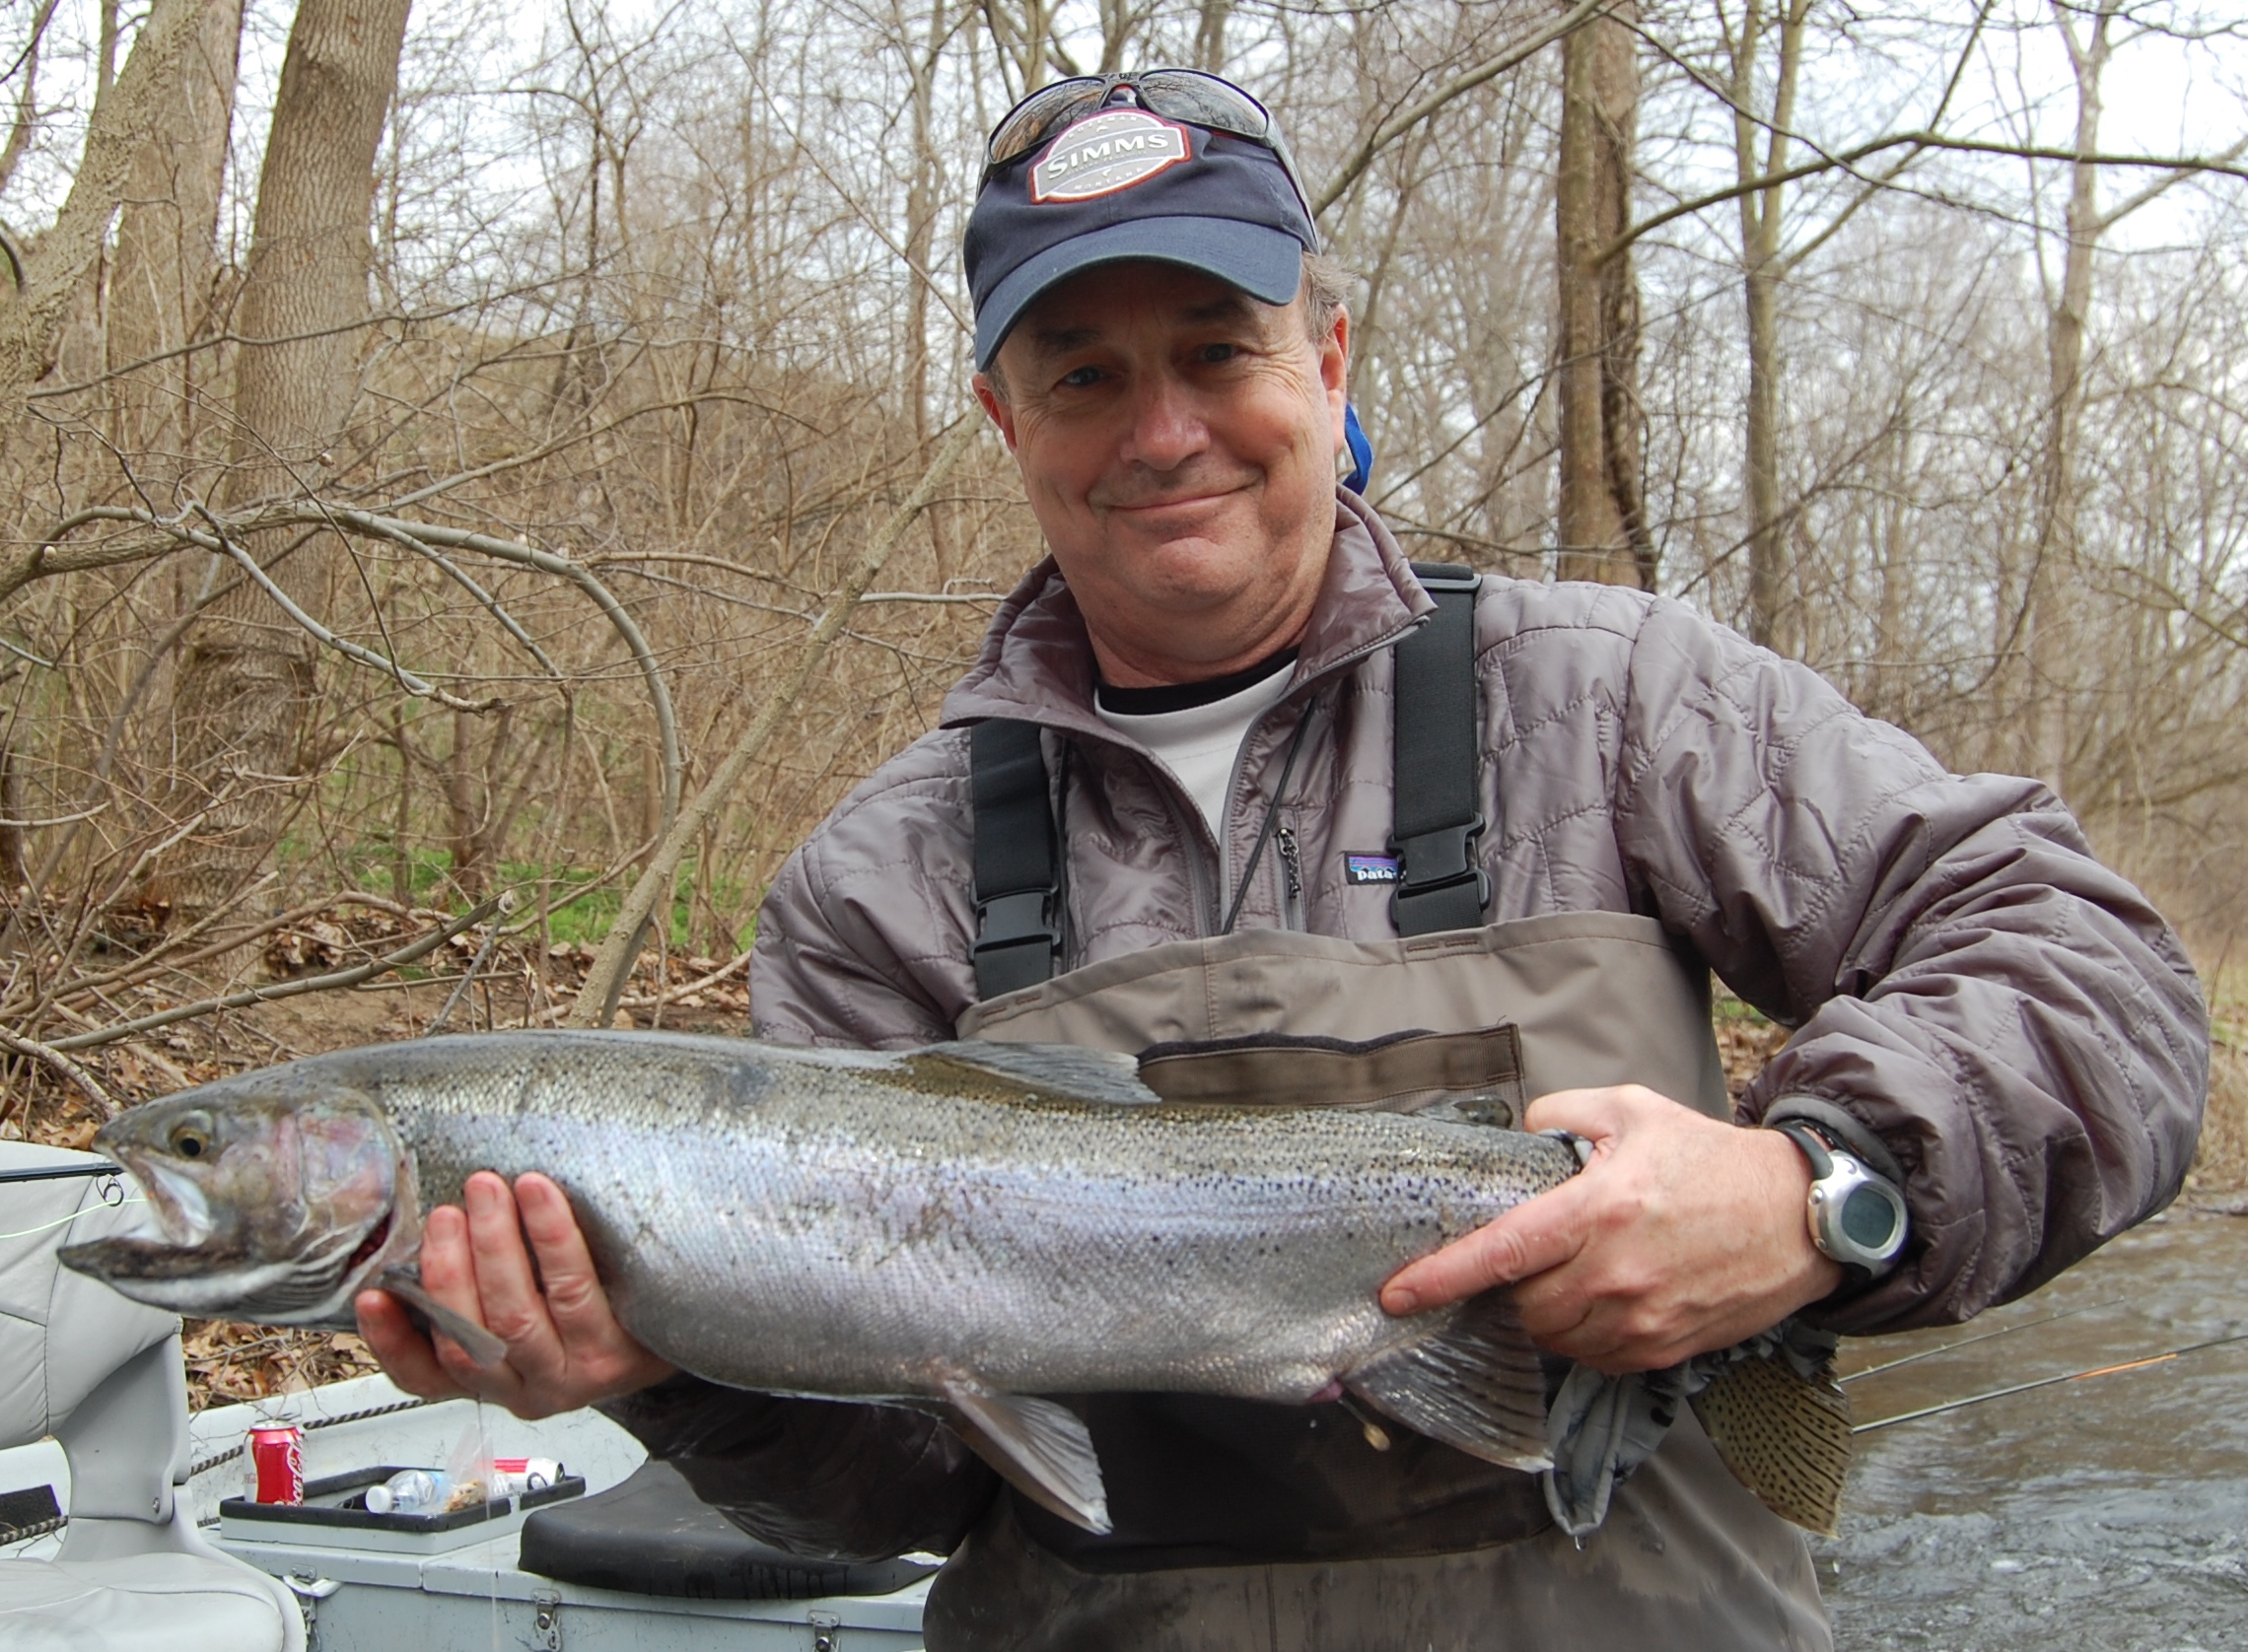 A Great Day Fishing For Steelhead On The Dowagiac